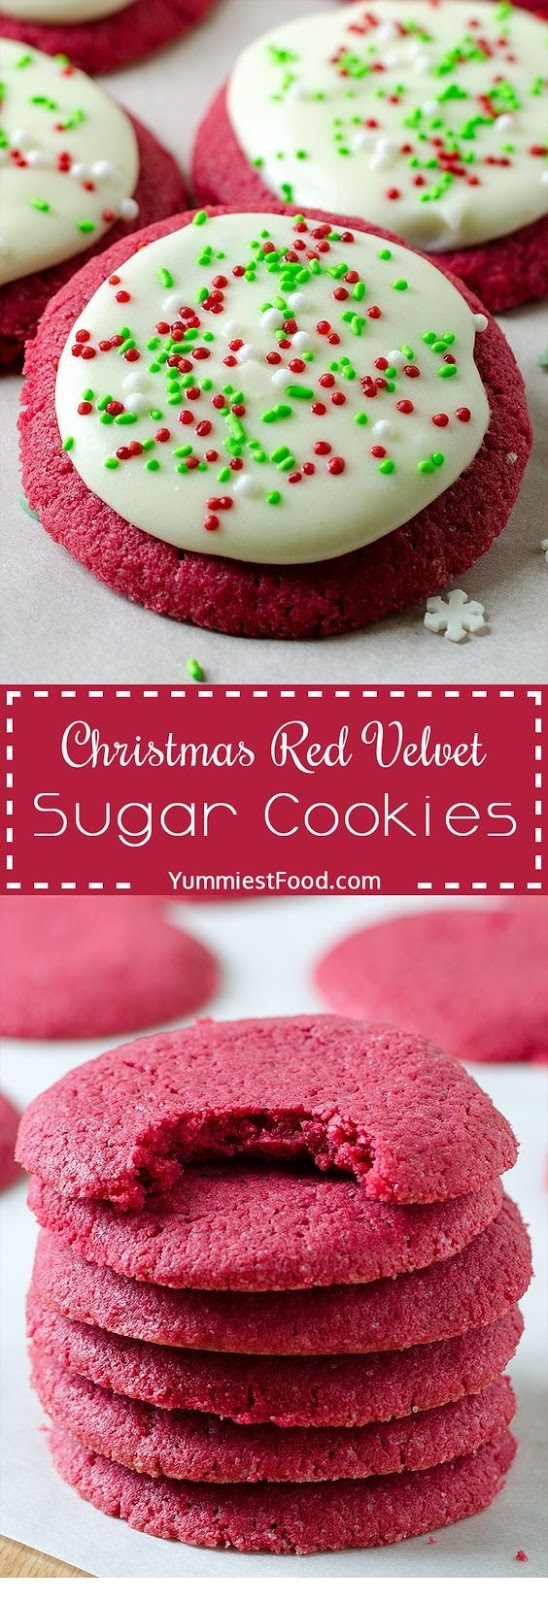 Christmas Red Velvet Sugar Cookies Recipe